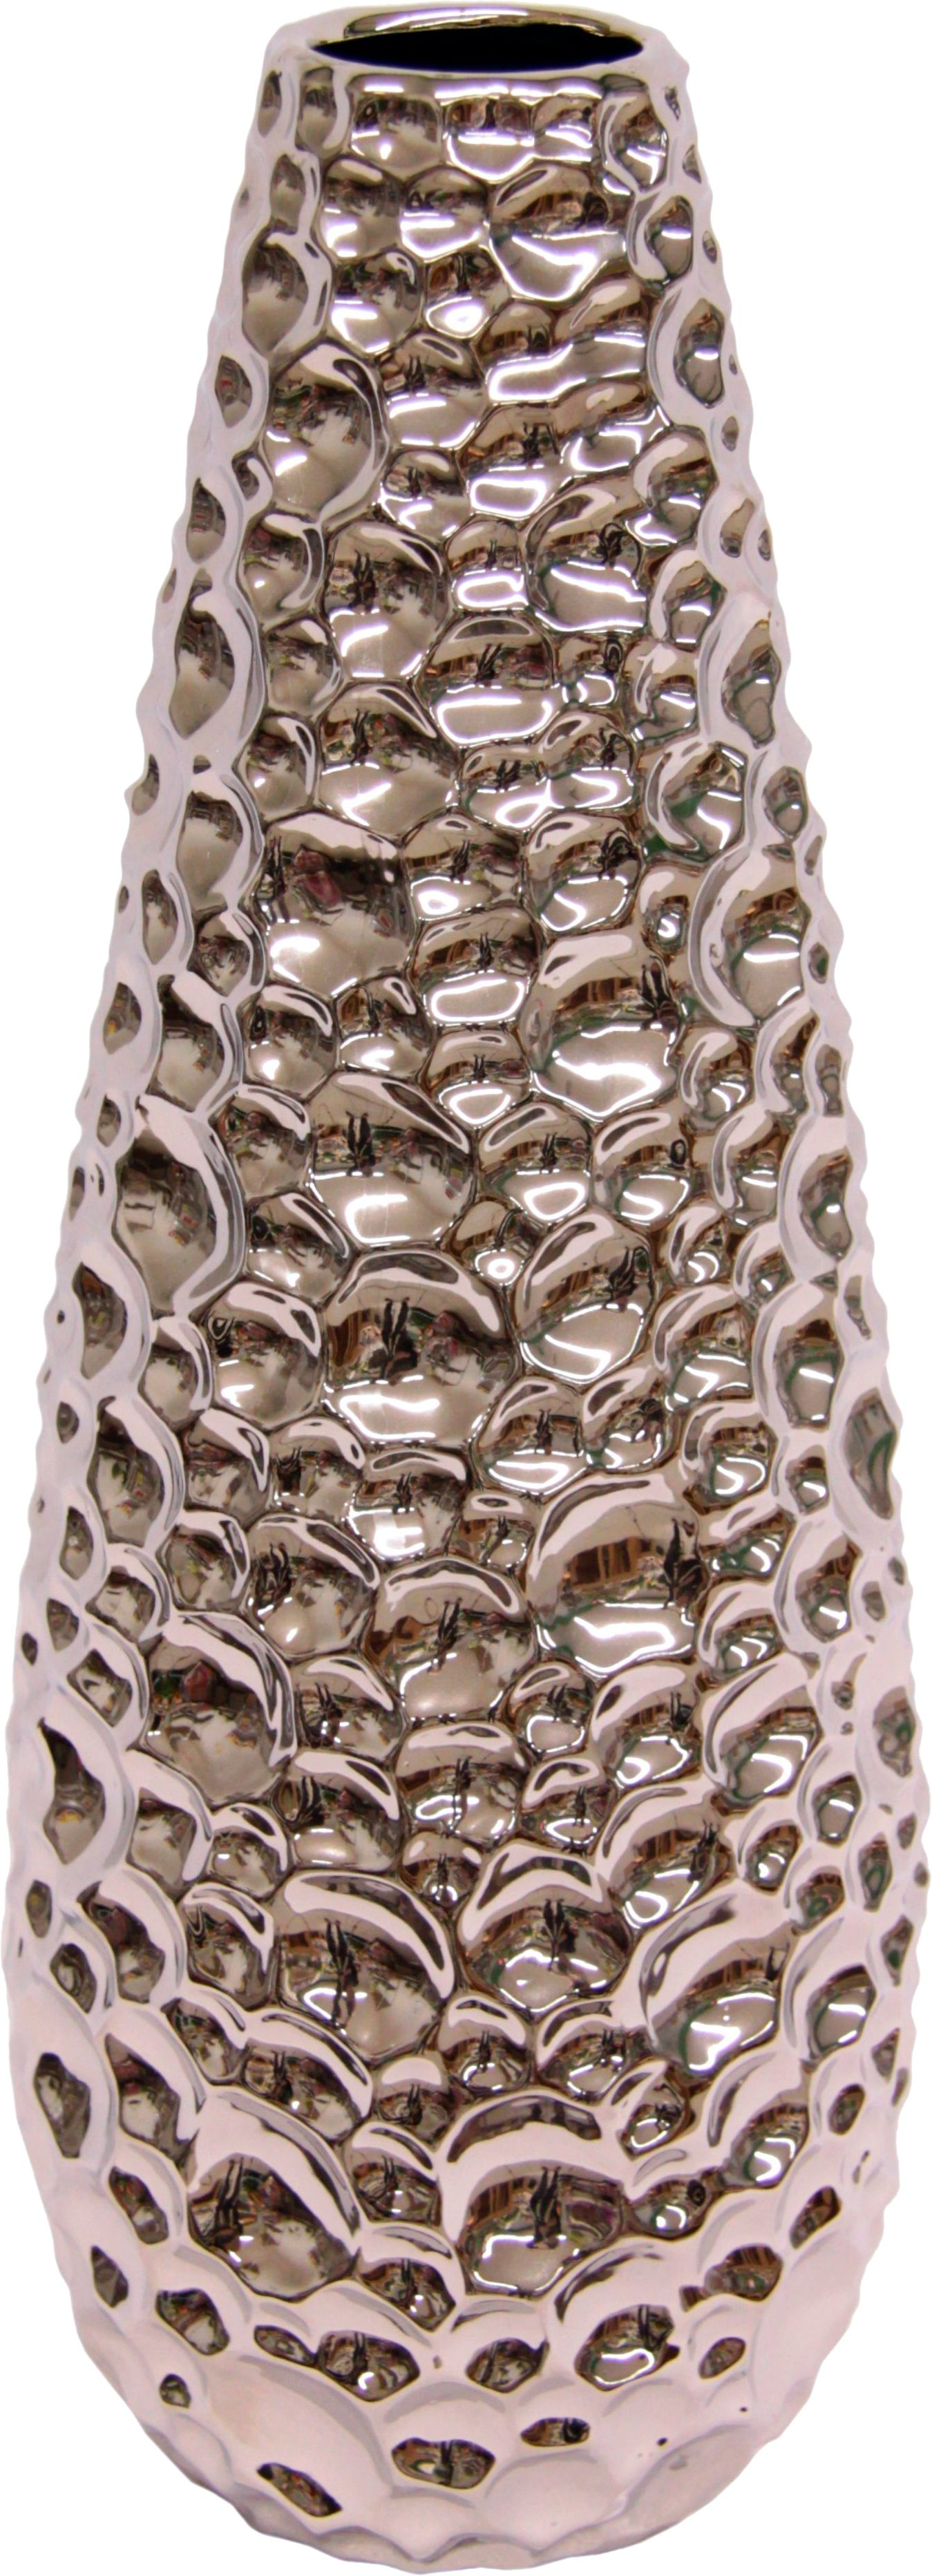 Premium collection by Home affaire Vase